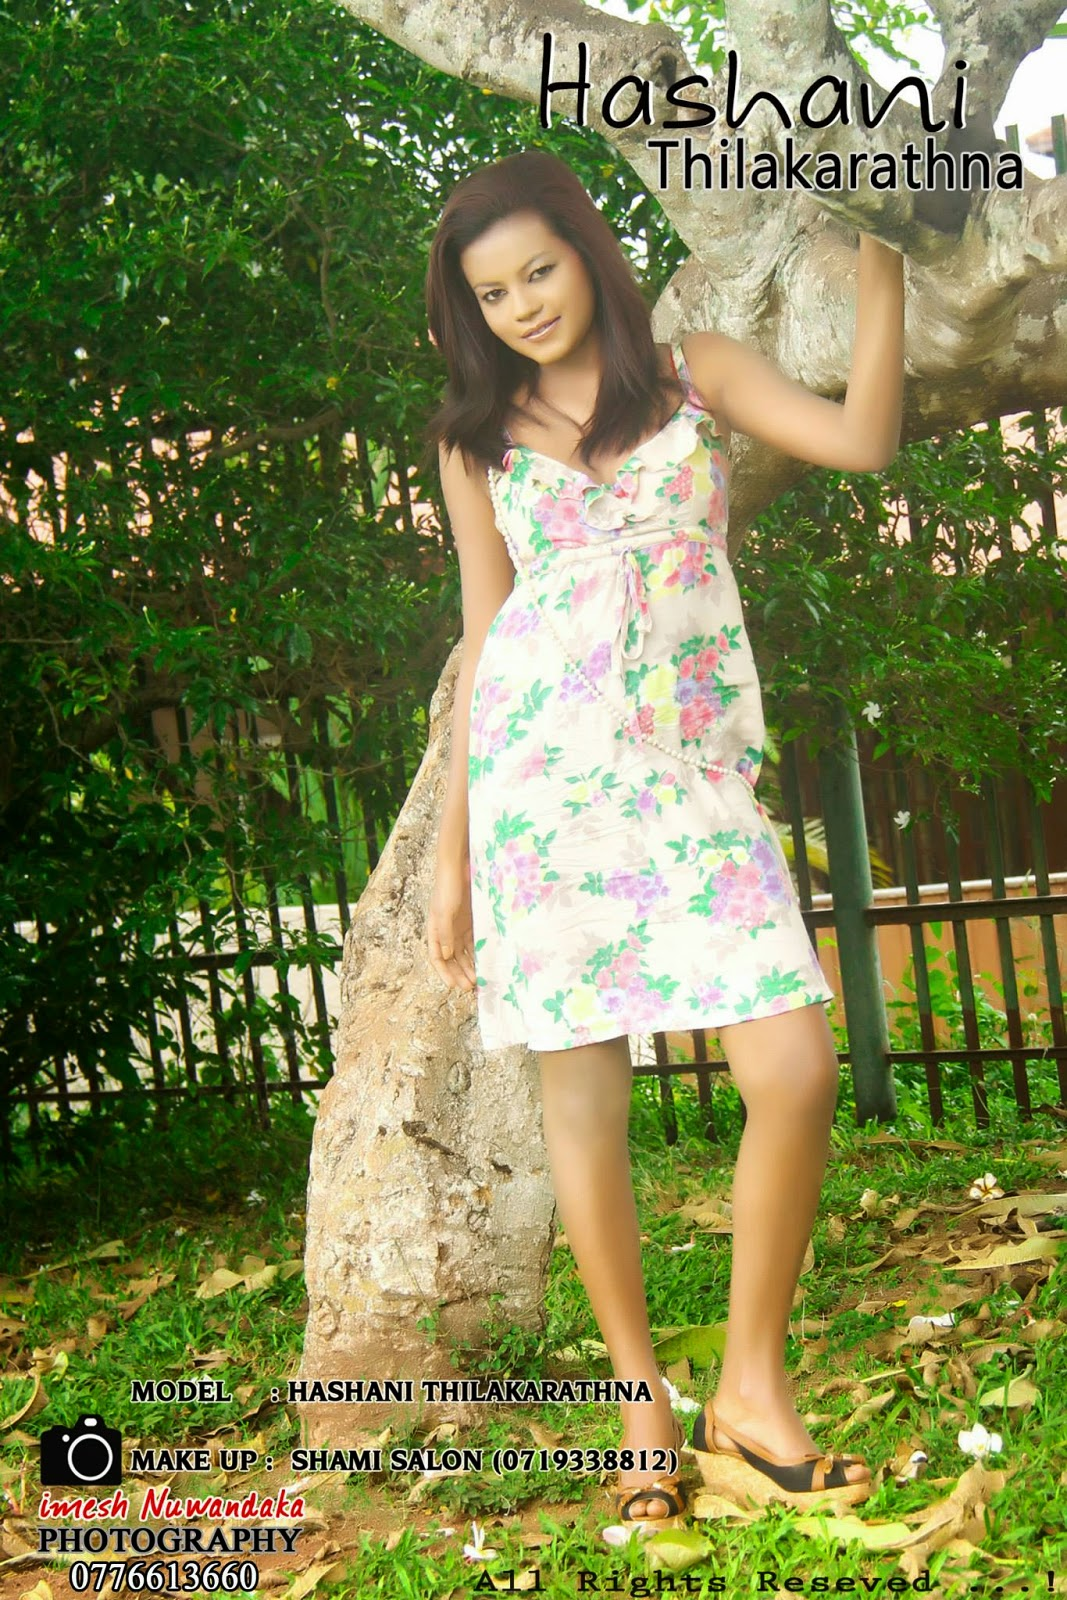 Hashani Thilakarathna mini dress